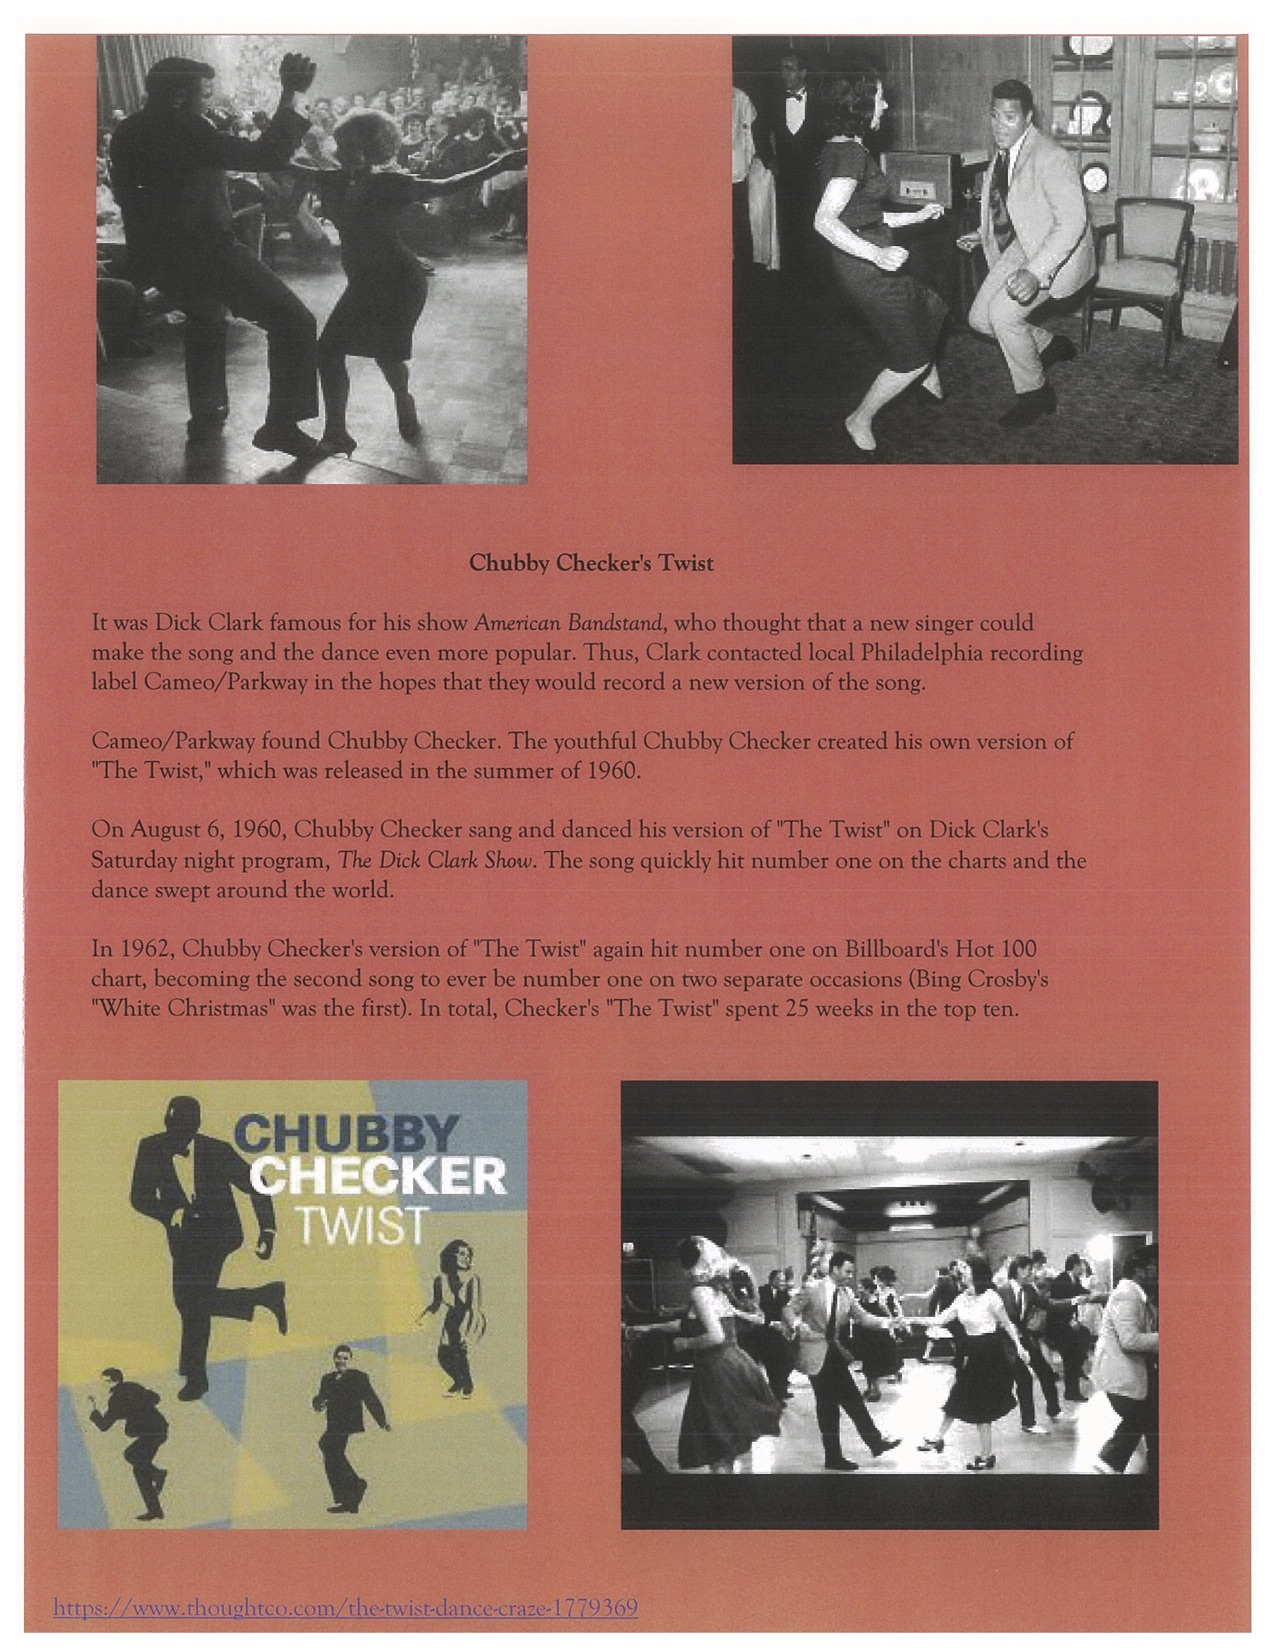 Page 7. The Chubby Checker dance with the performer dancing.